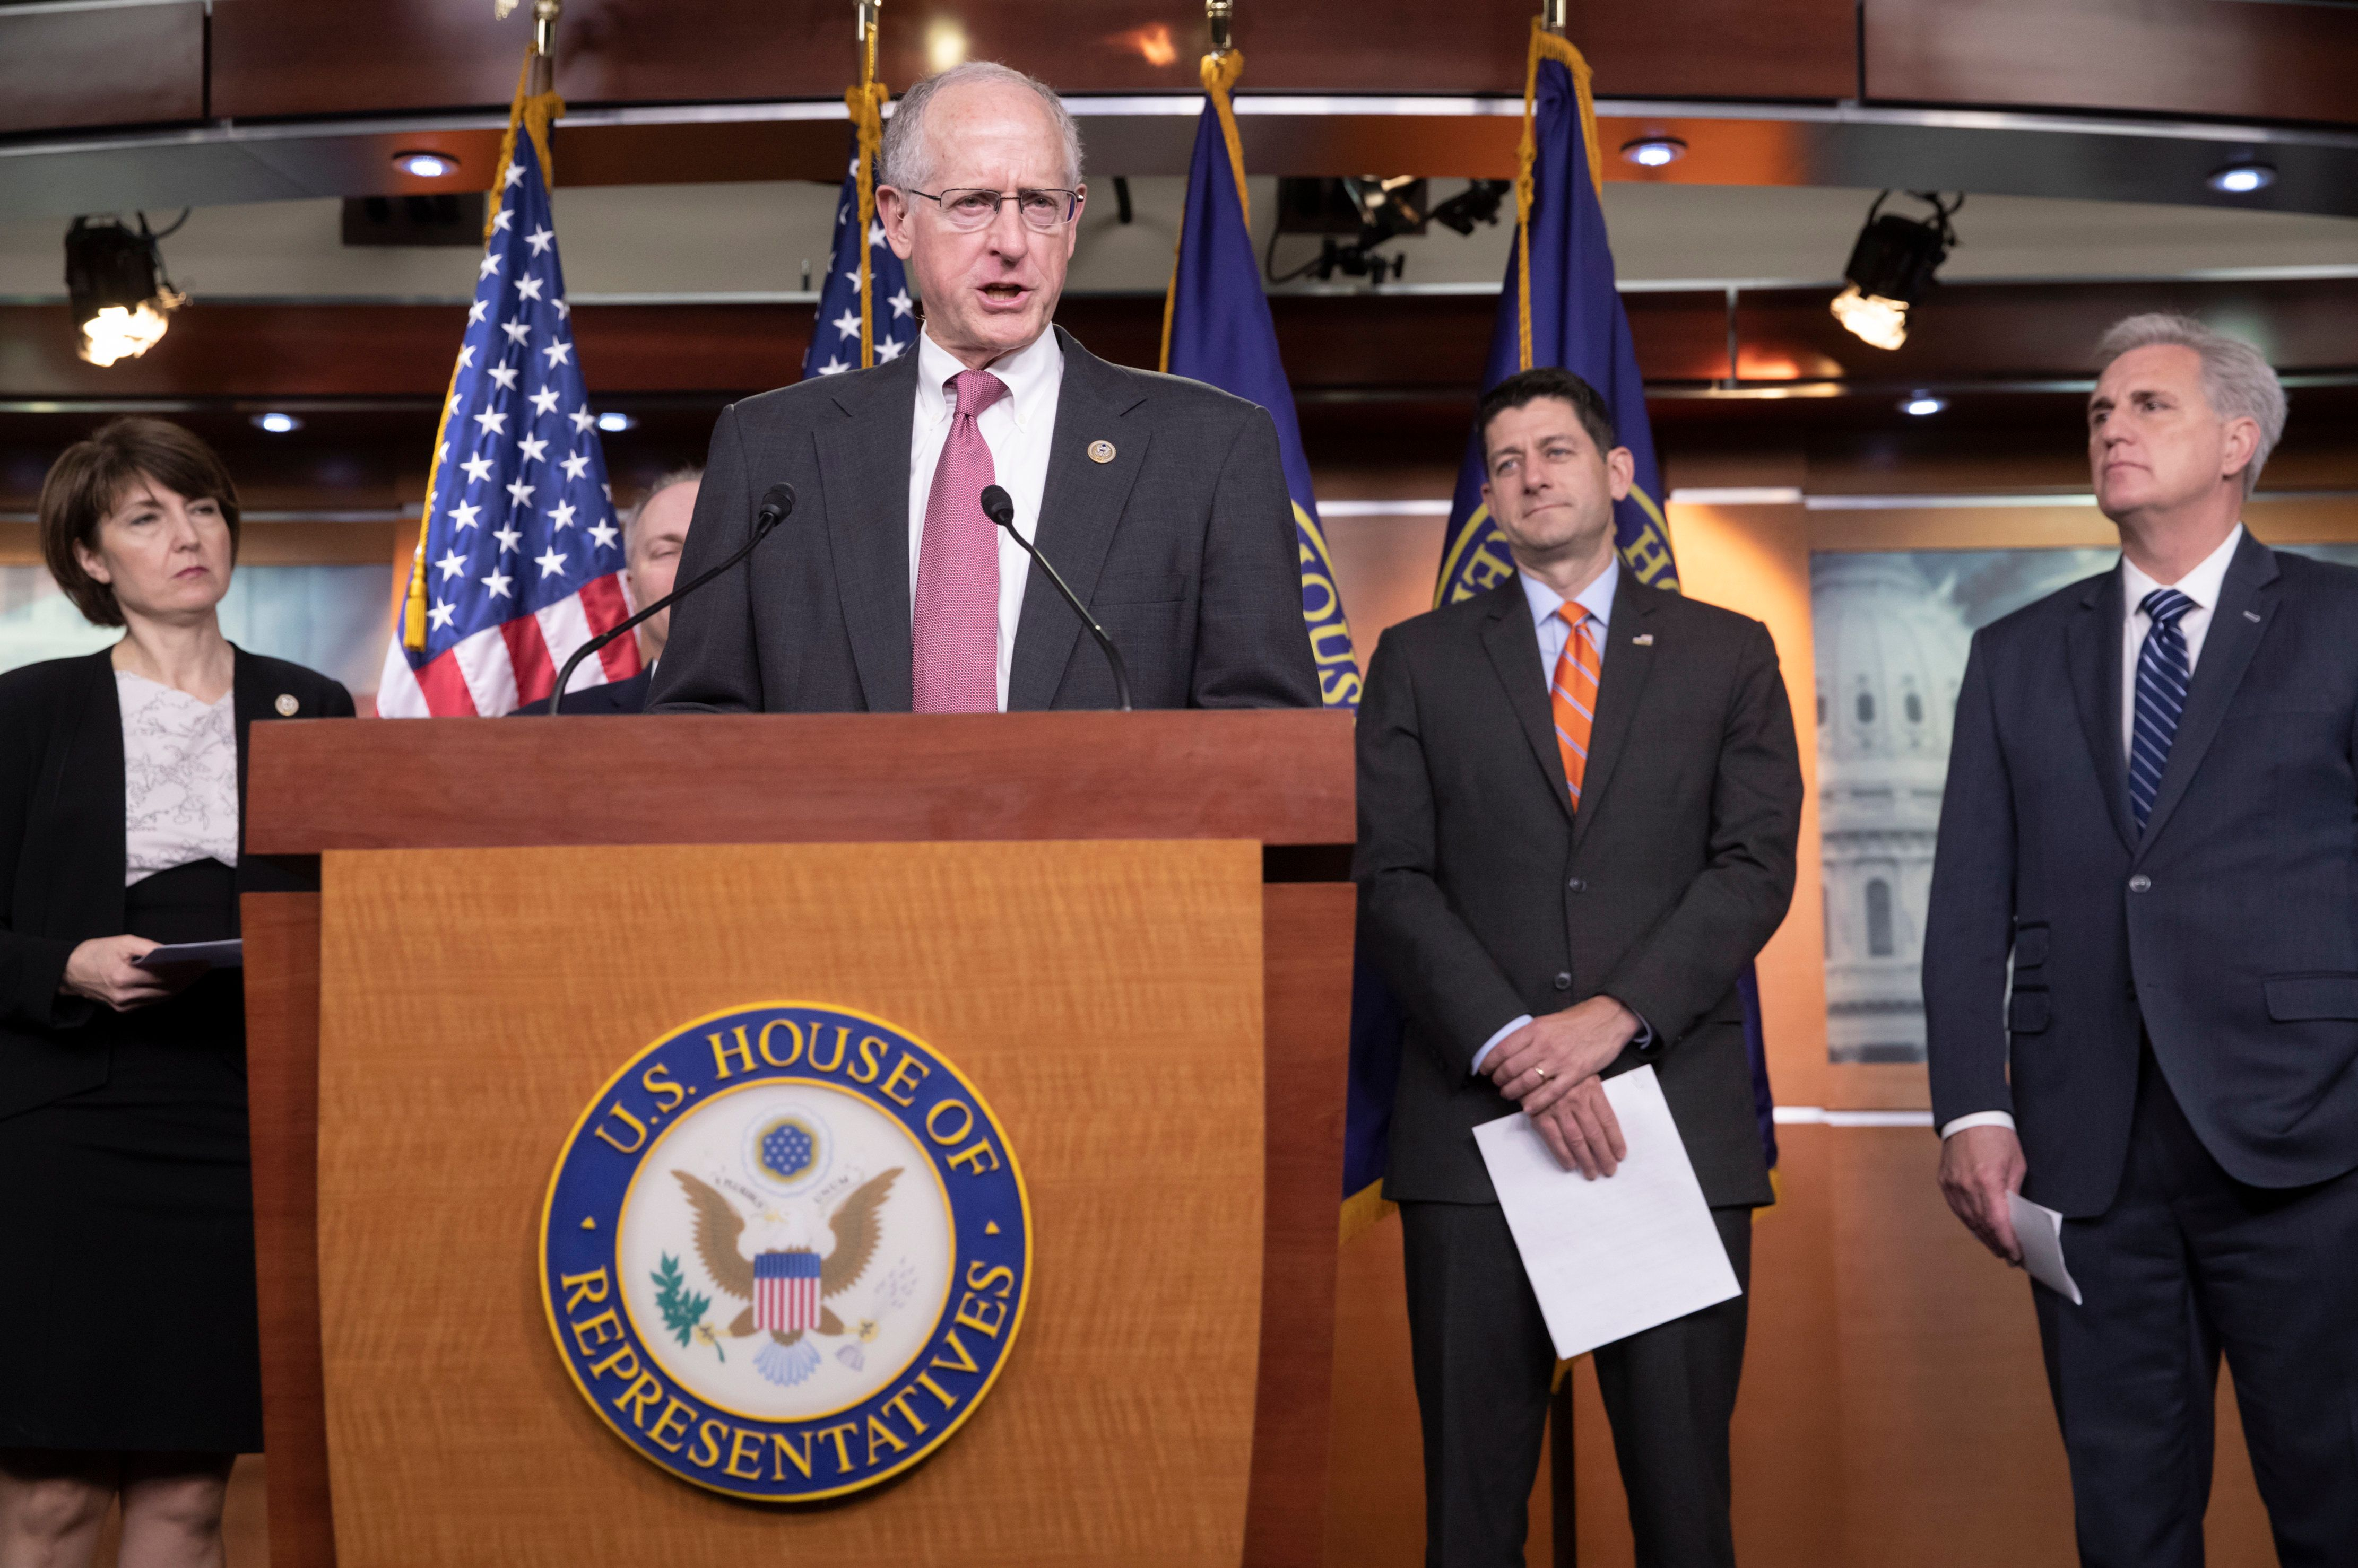 House Agriculture Committee Chairman Mike Conaway (R-Texas) — joined by Rep. Cathy McMorris Rodgers (R-Wash.), Speaker